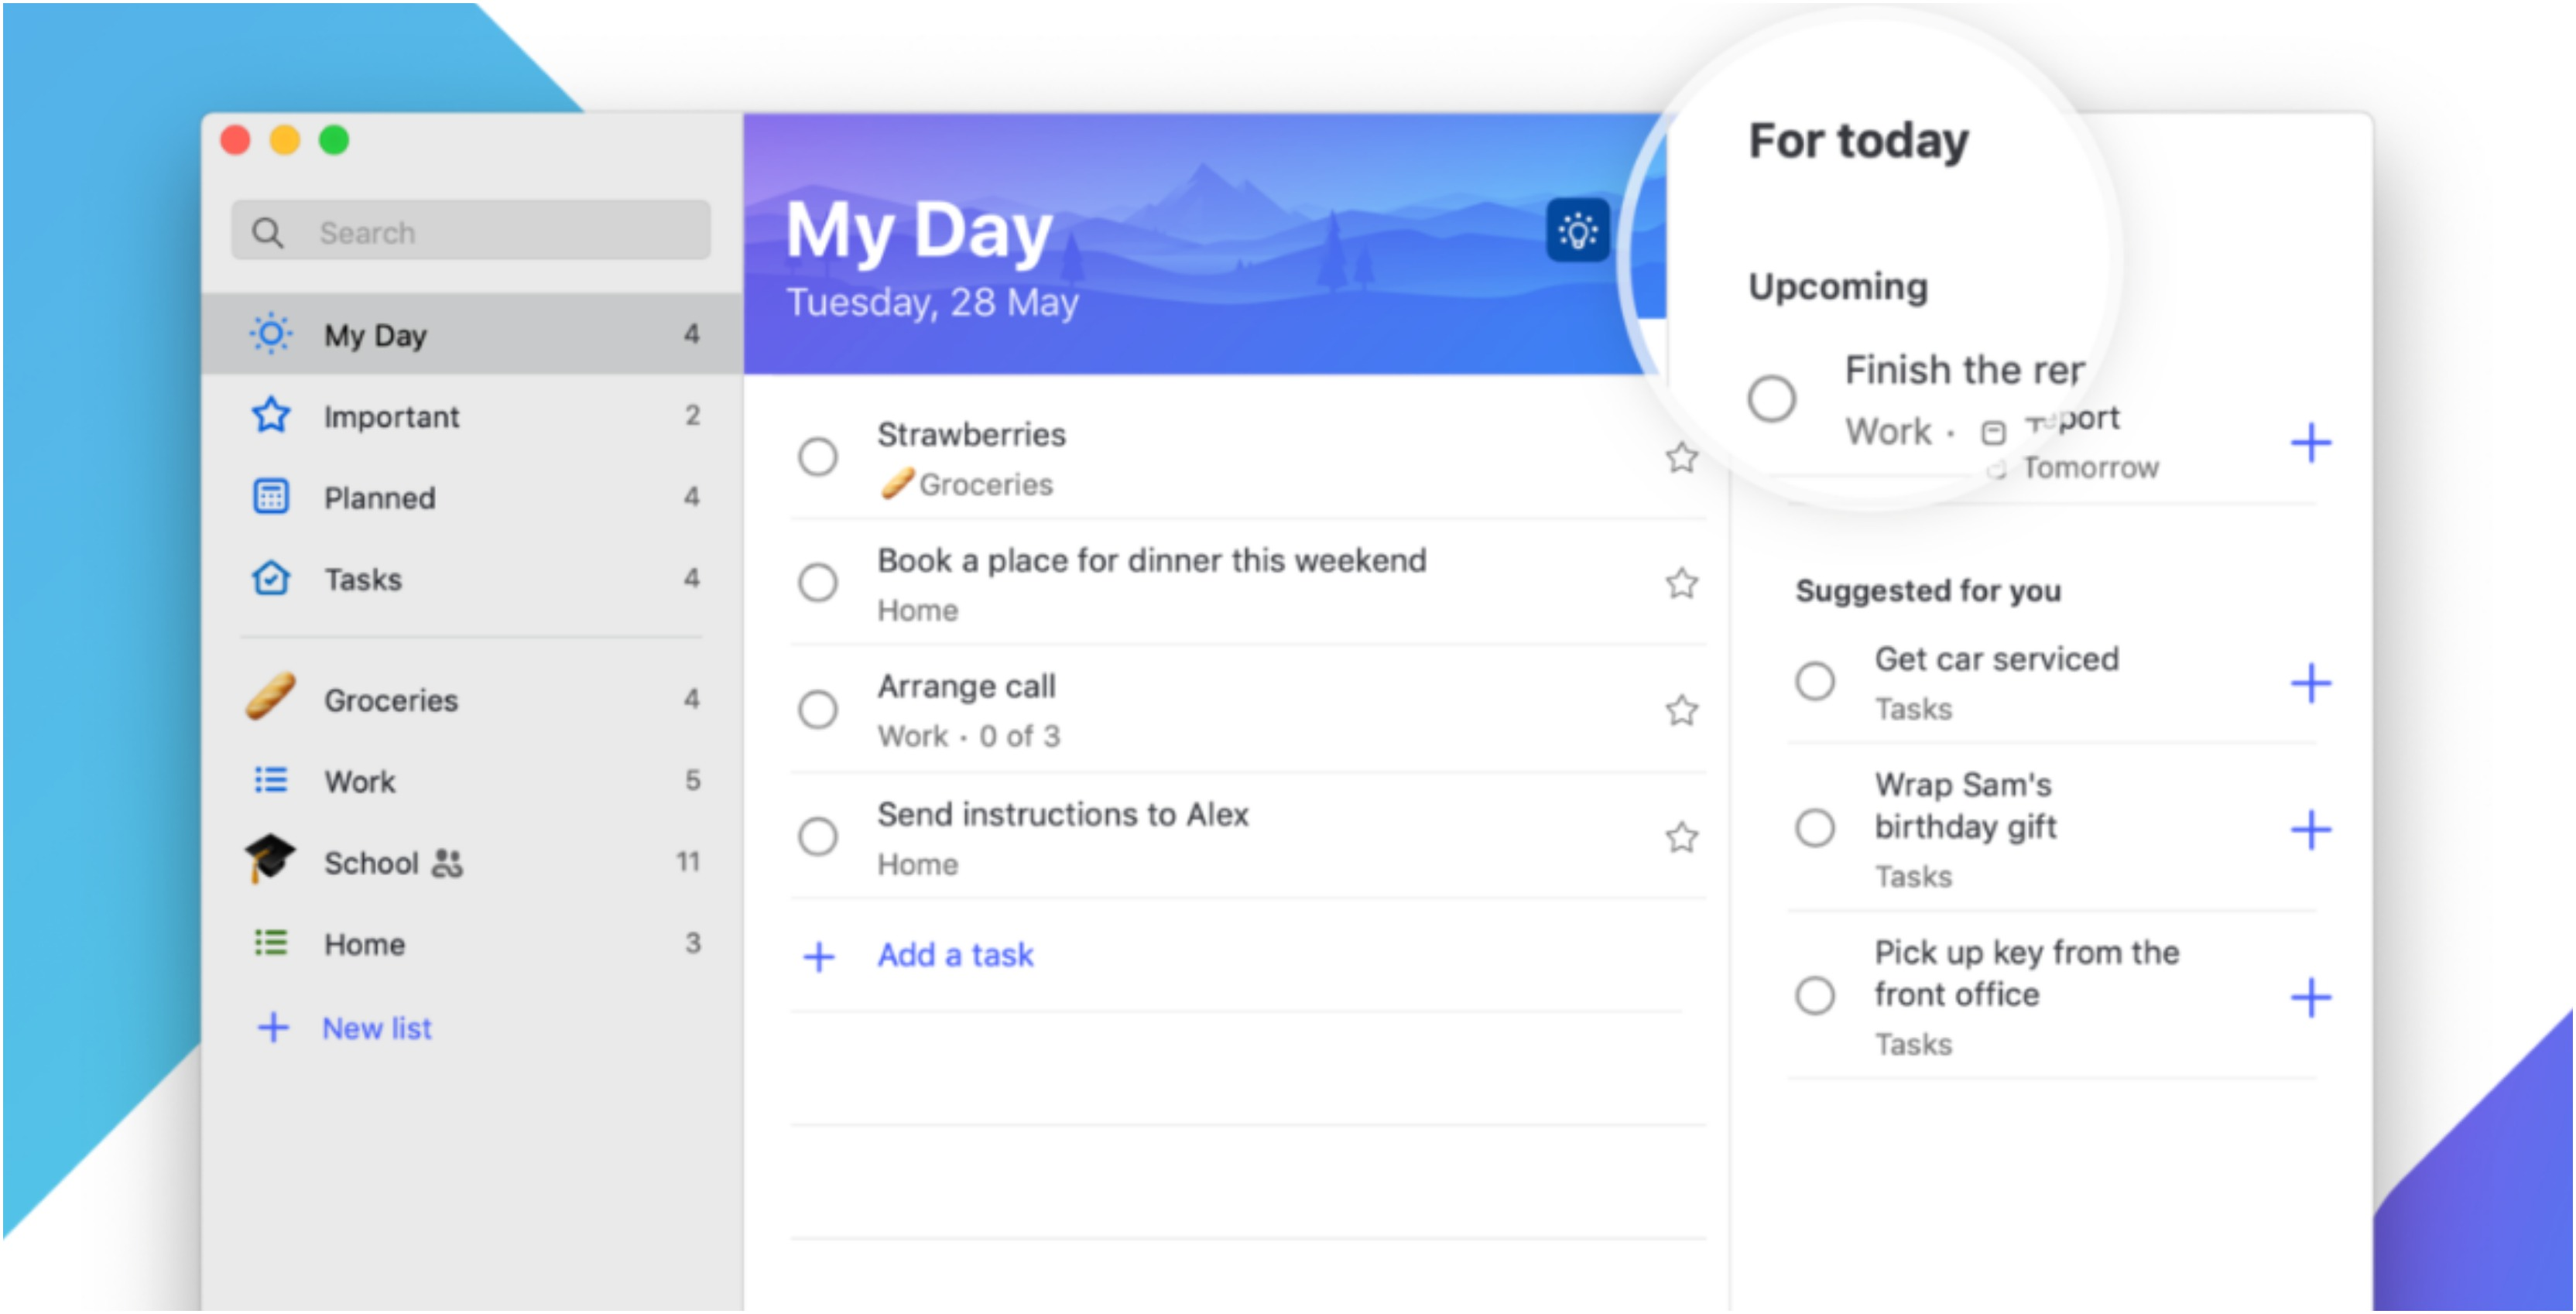 Microsoft releases its 'To-Do' app in the Mac App Store